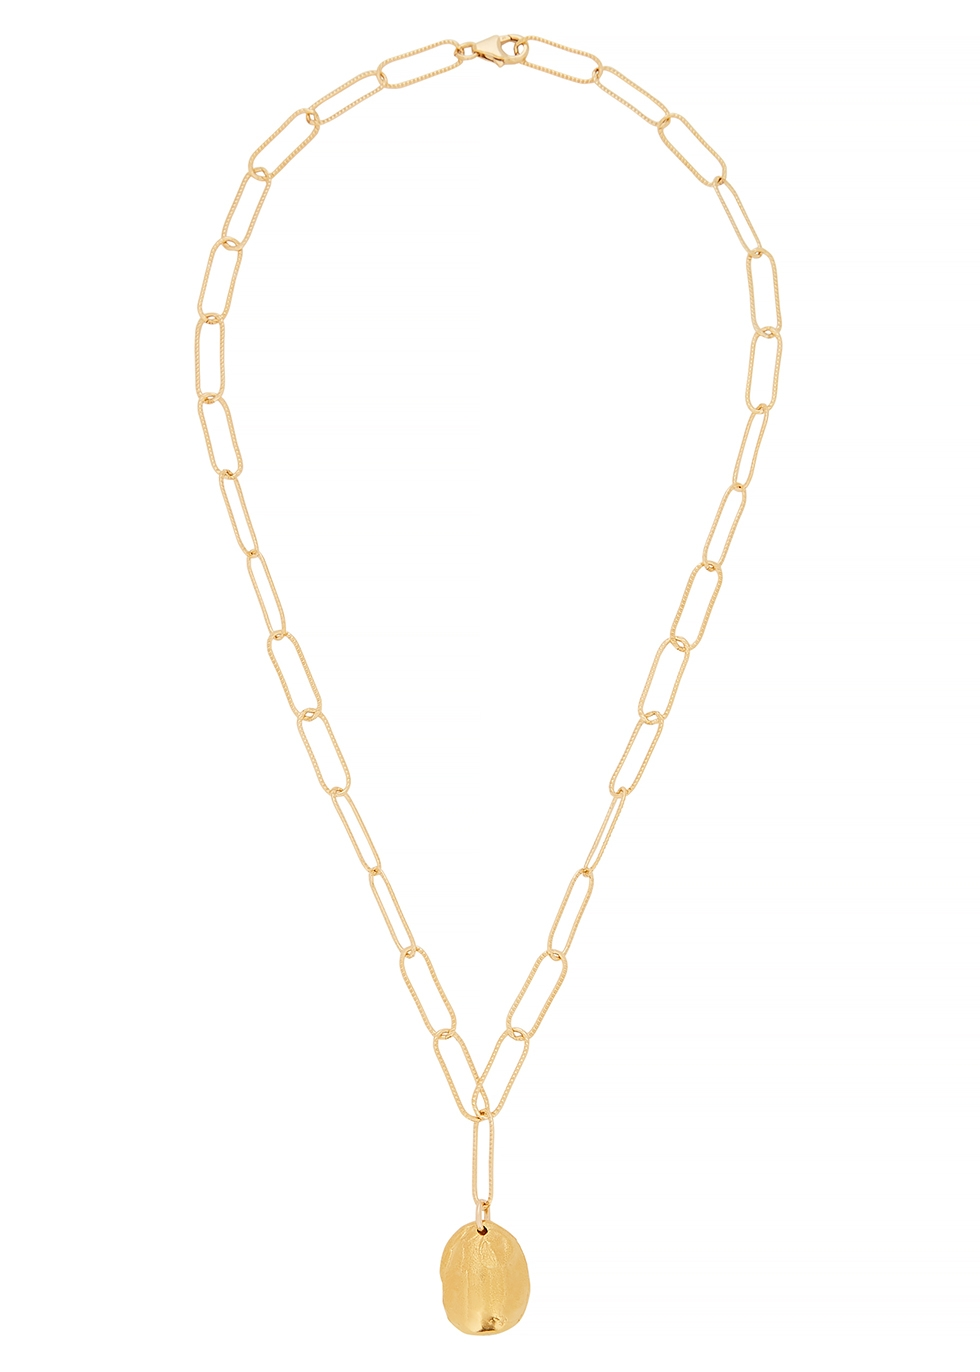 The Clairvoyant 24kt gold-plated necklace